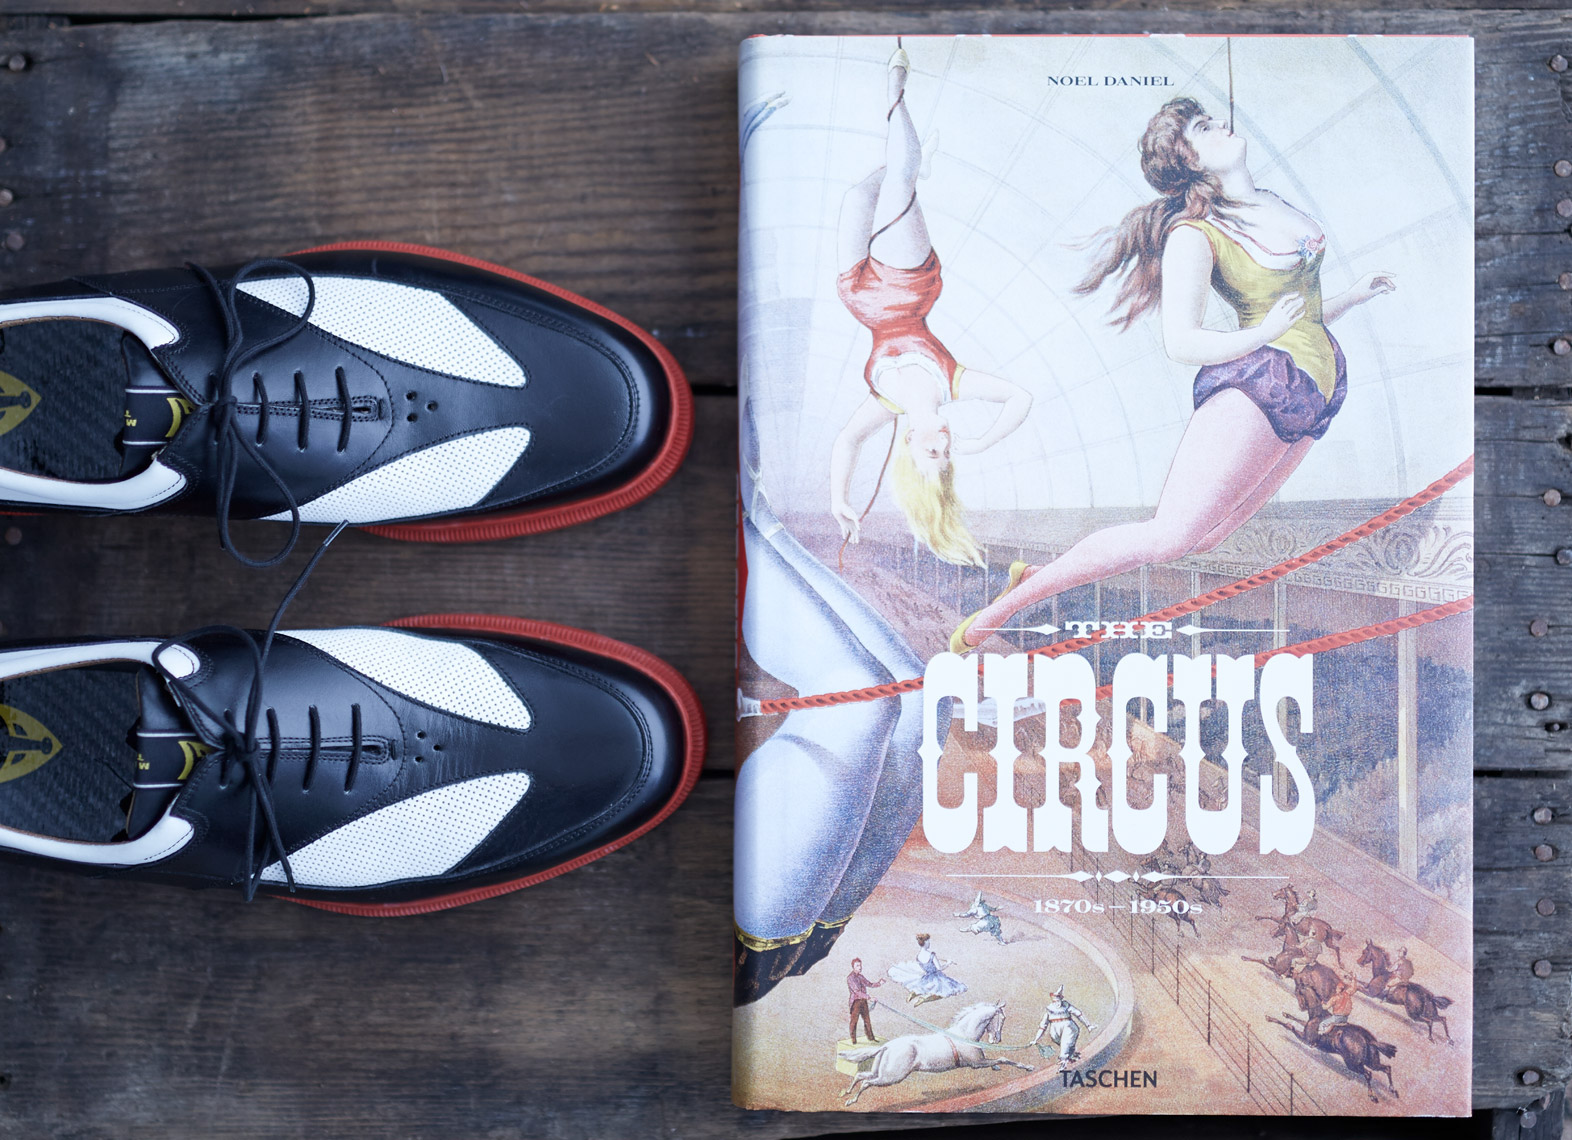 black and white saddle shoes with red soles next to circus book